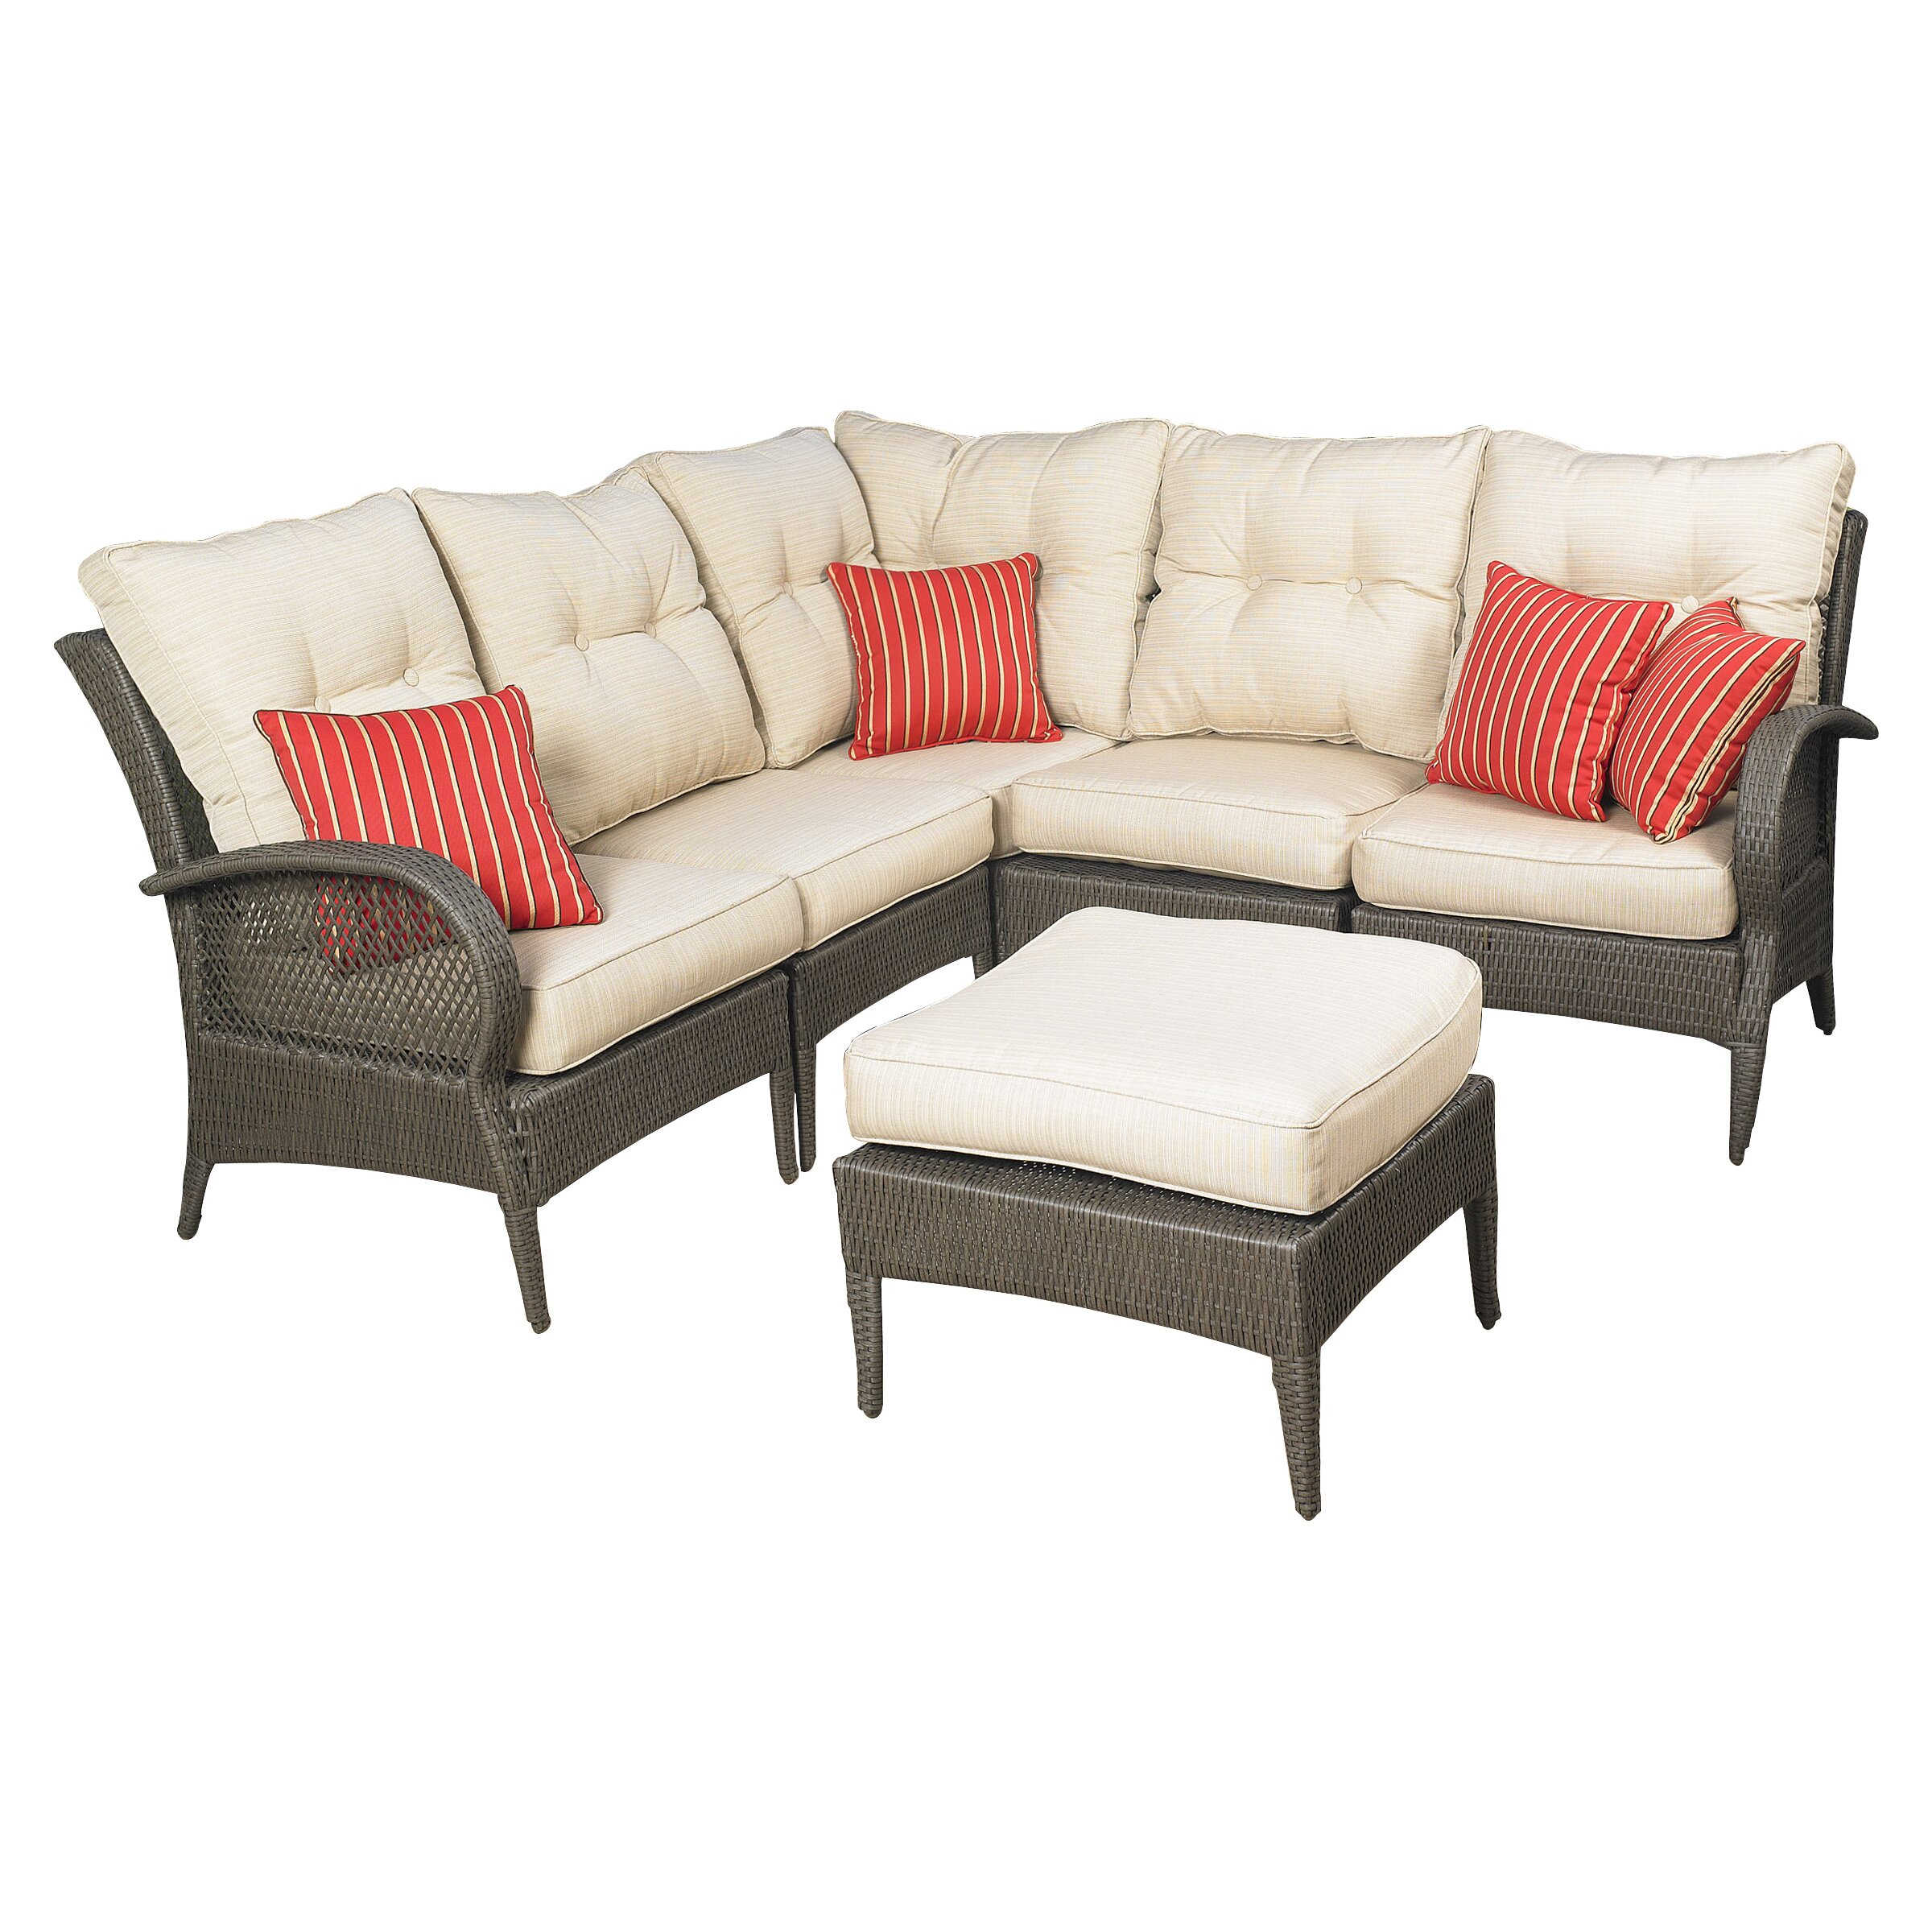 Mission Hills Laguna 6 Piece Sectional Deep Seating Group with Cushions &